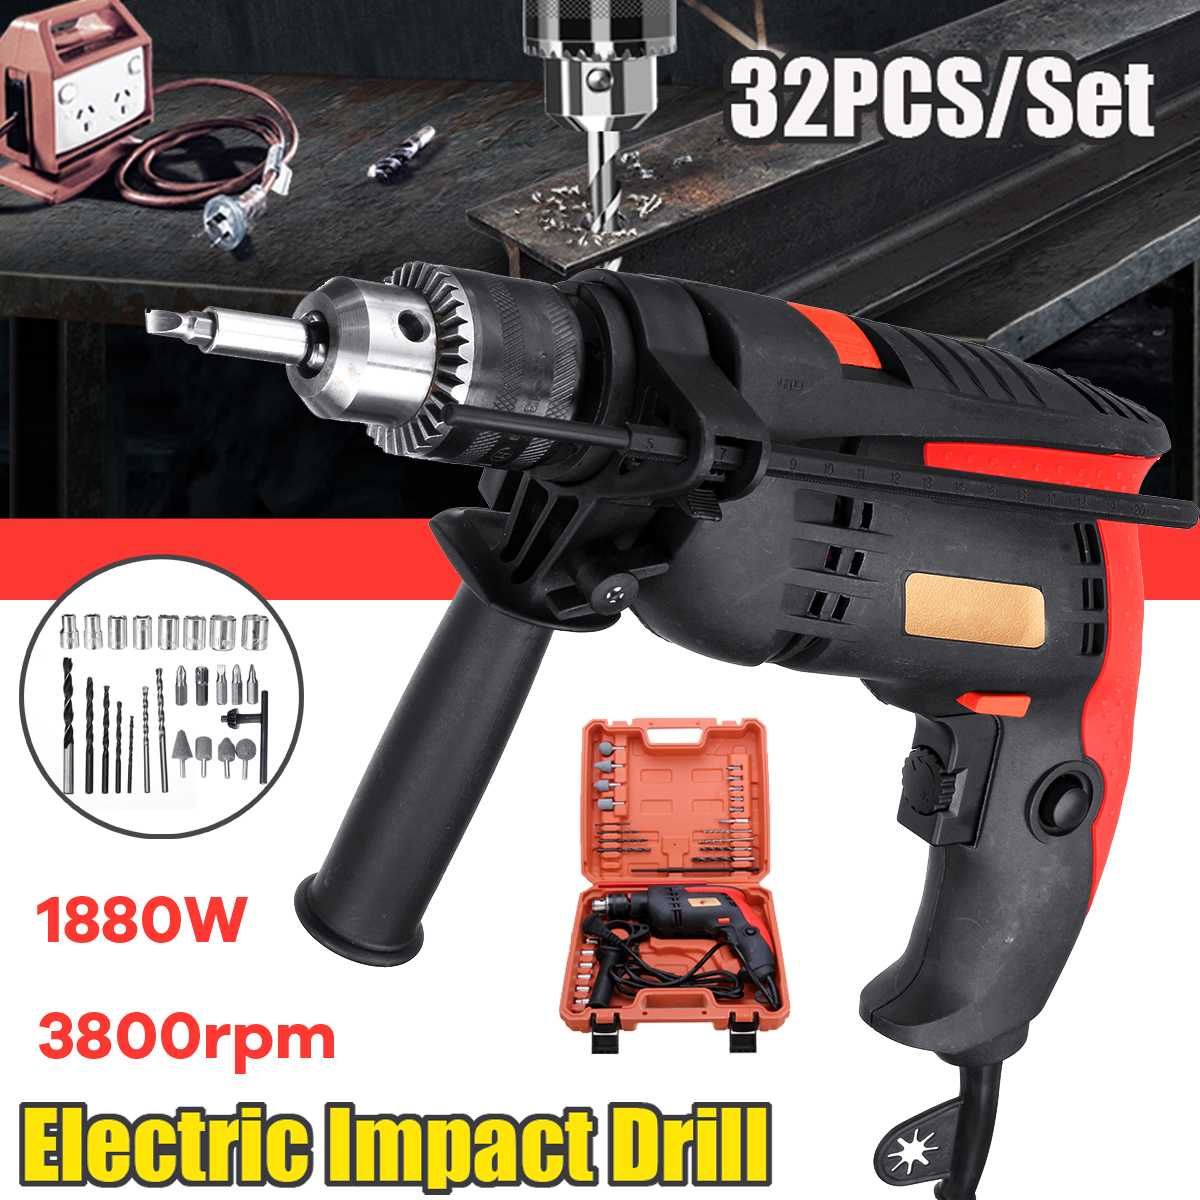 32Pcs 1880W Electric Brushless Motor Impact Drill 3MM Electric Impact Drill Guns Torque Driver Tool32Pcs 1880W Electric Brushless Motor Impact Drill 3MM Electric Impact Drill Guns Torque Driver Tool